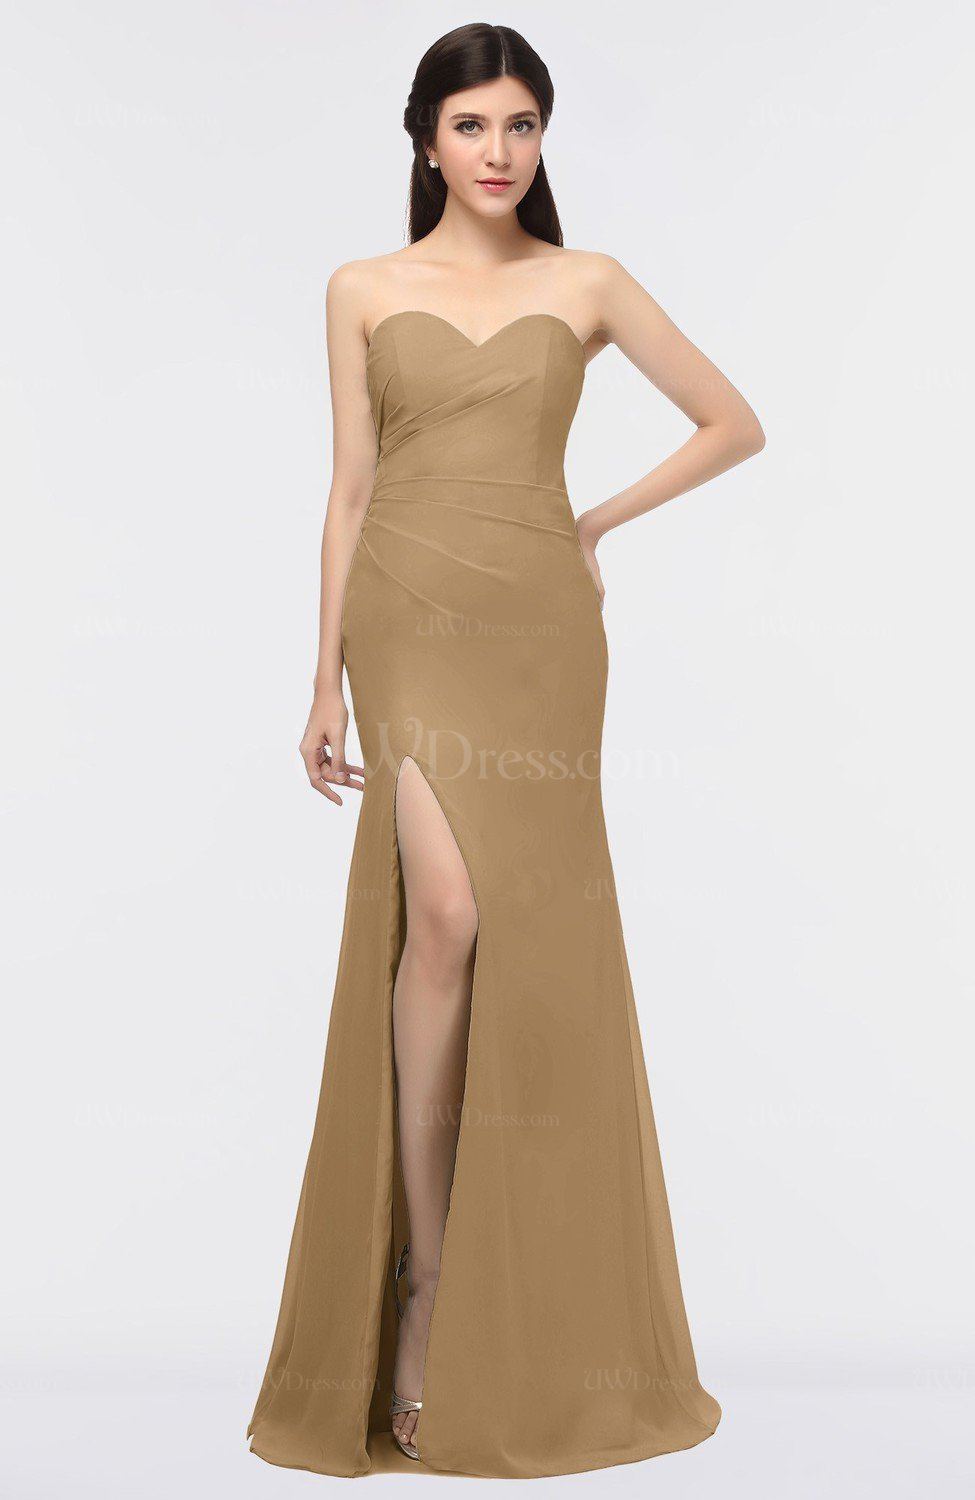 dad2e61be16d Indian Tan Mature Strapless Sleeveless Zip up Floor Length Prom Dresses  (Style D26302)